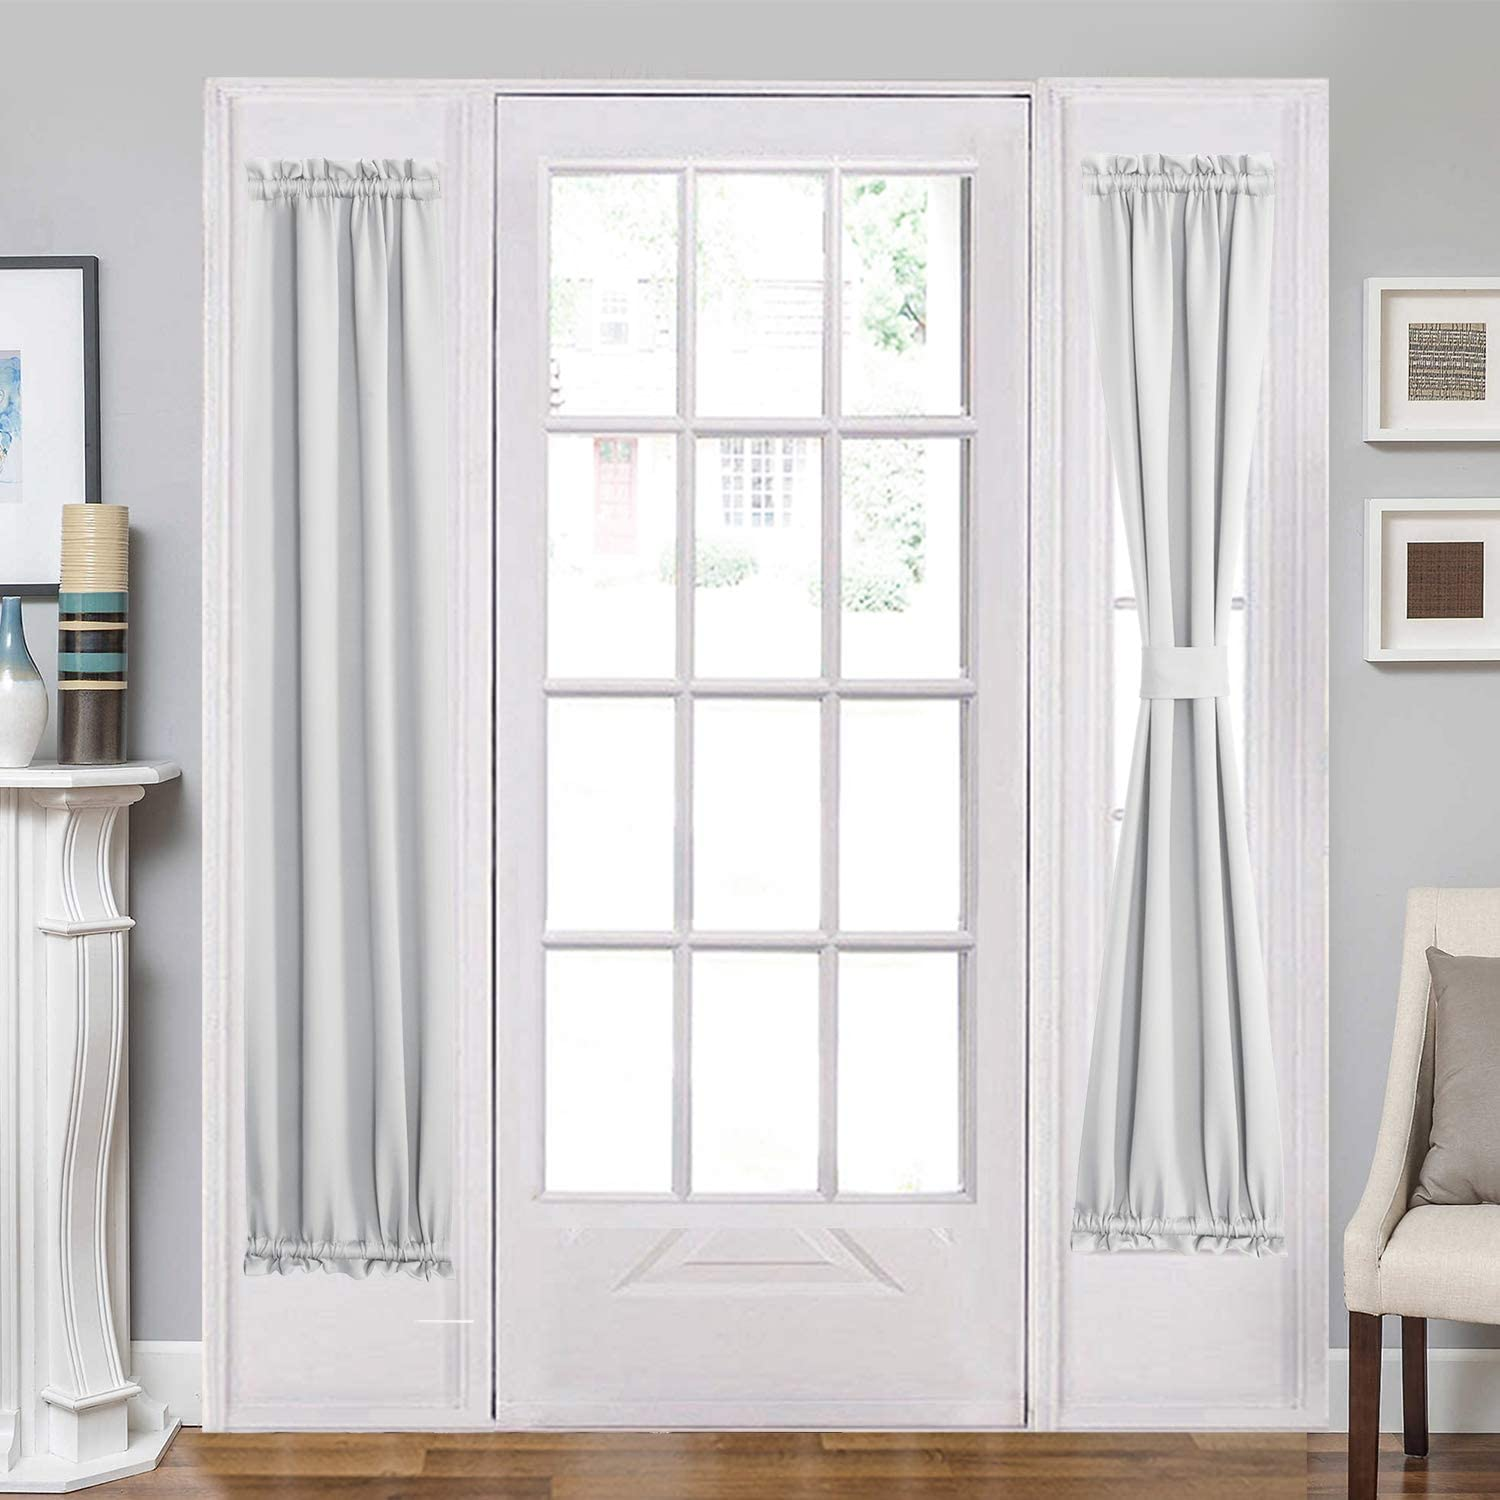 Aquazolax Rod Pocket French Door Drapes Pan Blakout Curtain Kansas City Mall Our shop OFFers the best service